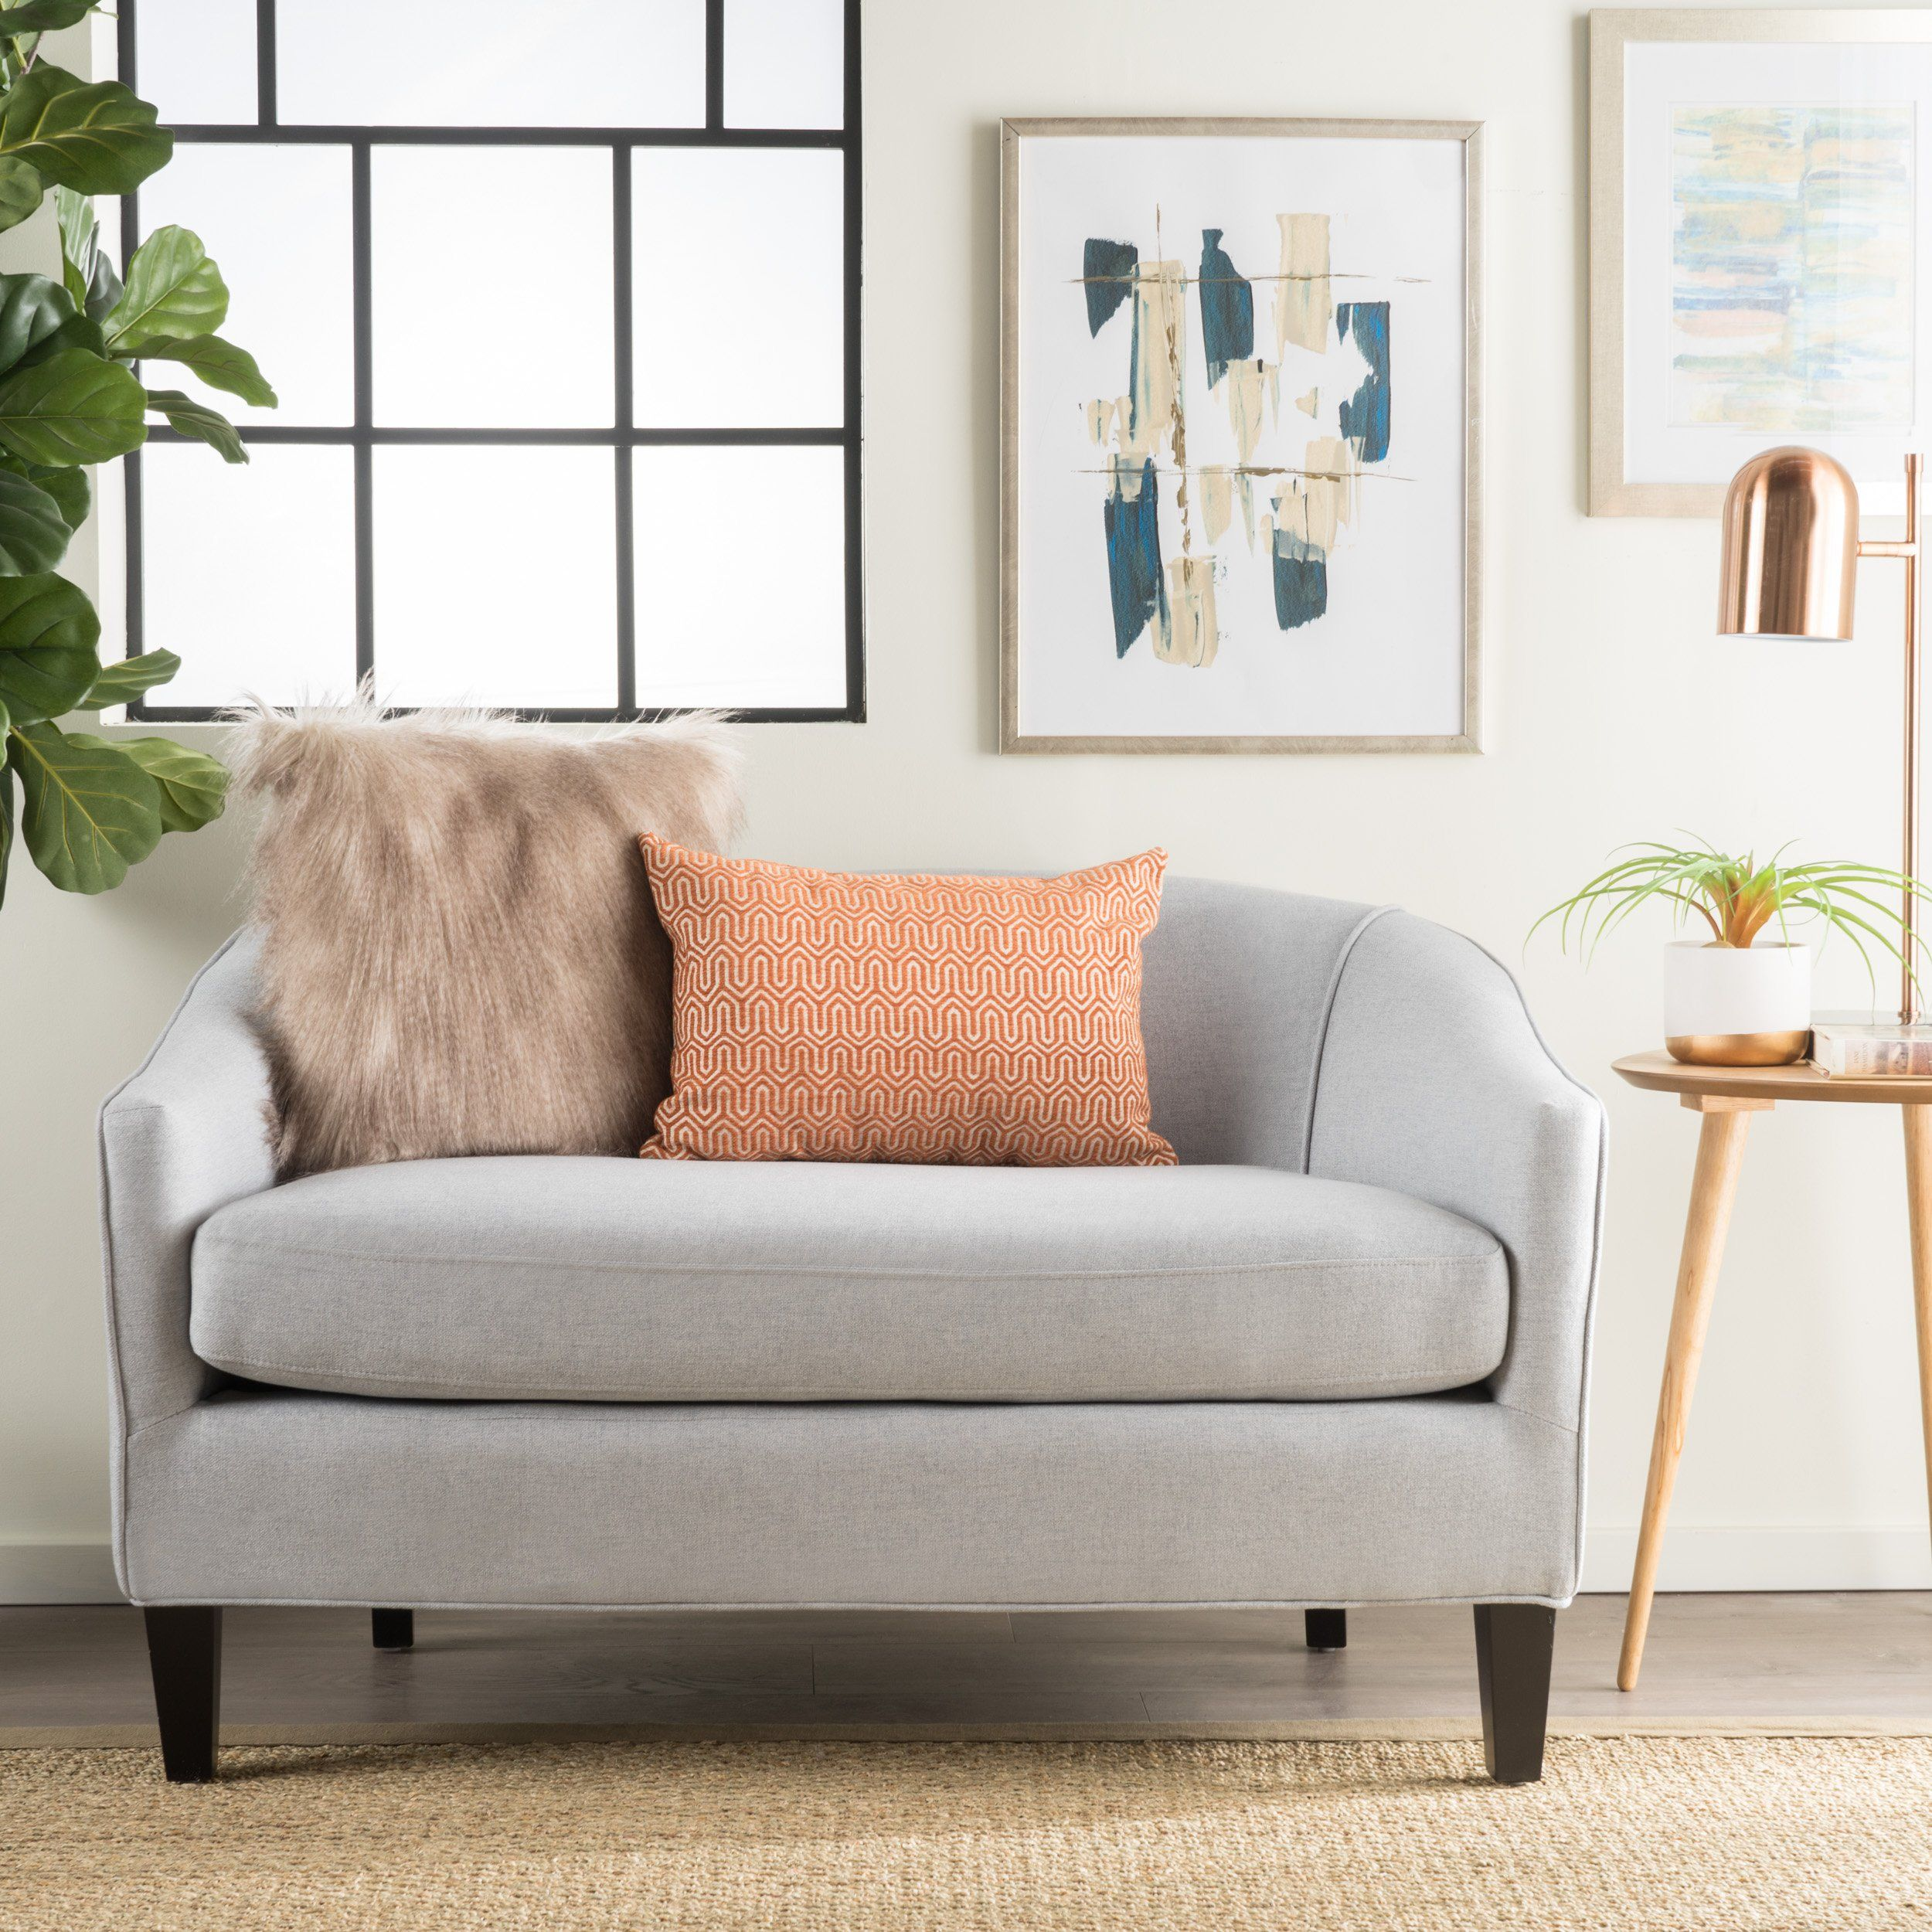 loveseat mid dowel wood brown light sofa button century tufted petite with legs products upholstery modern